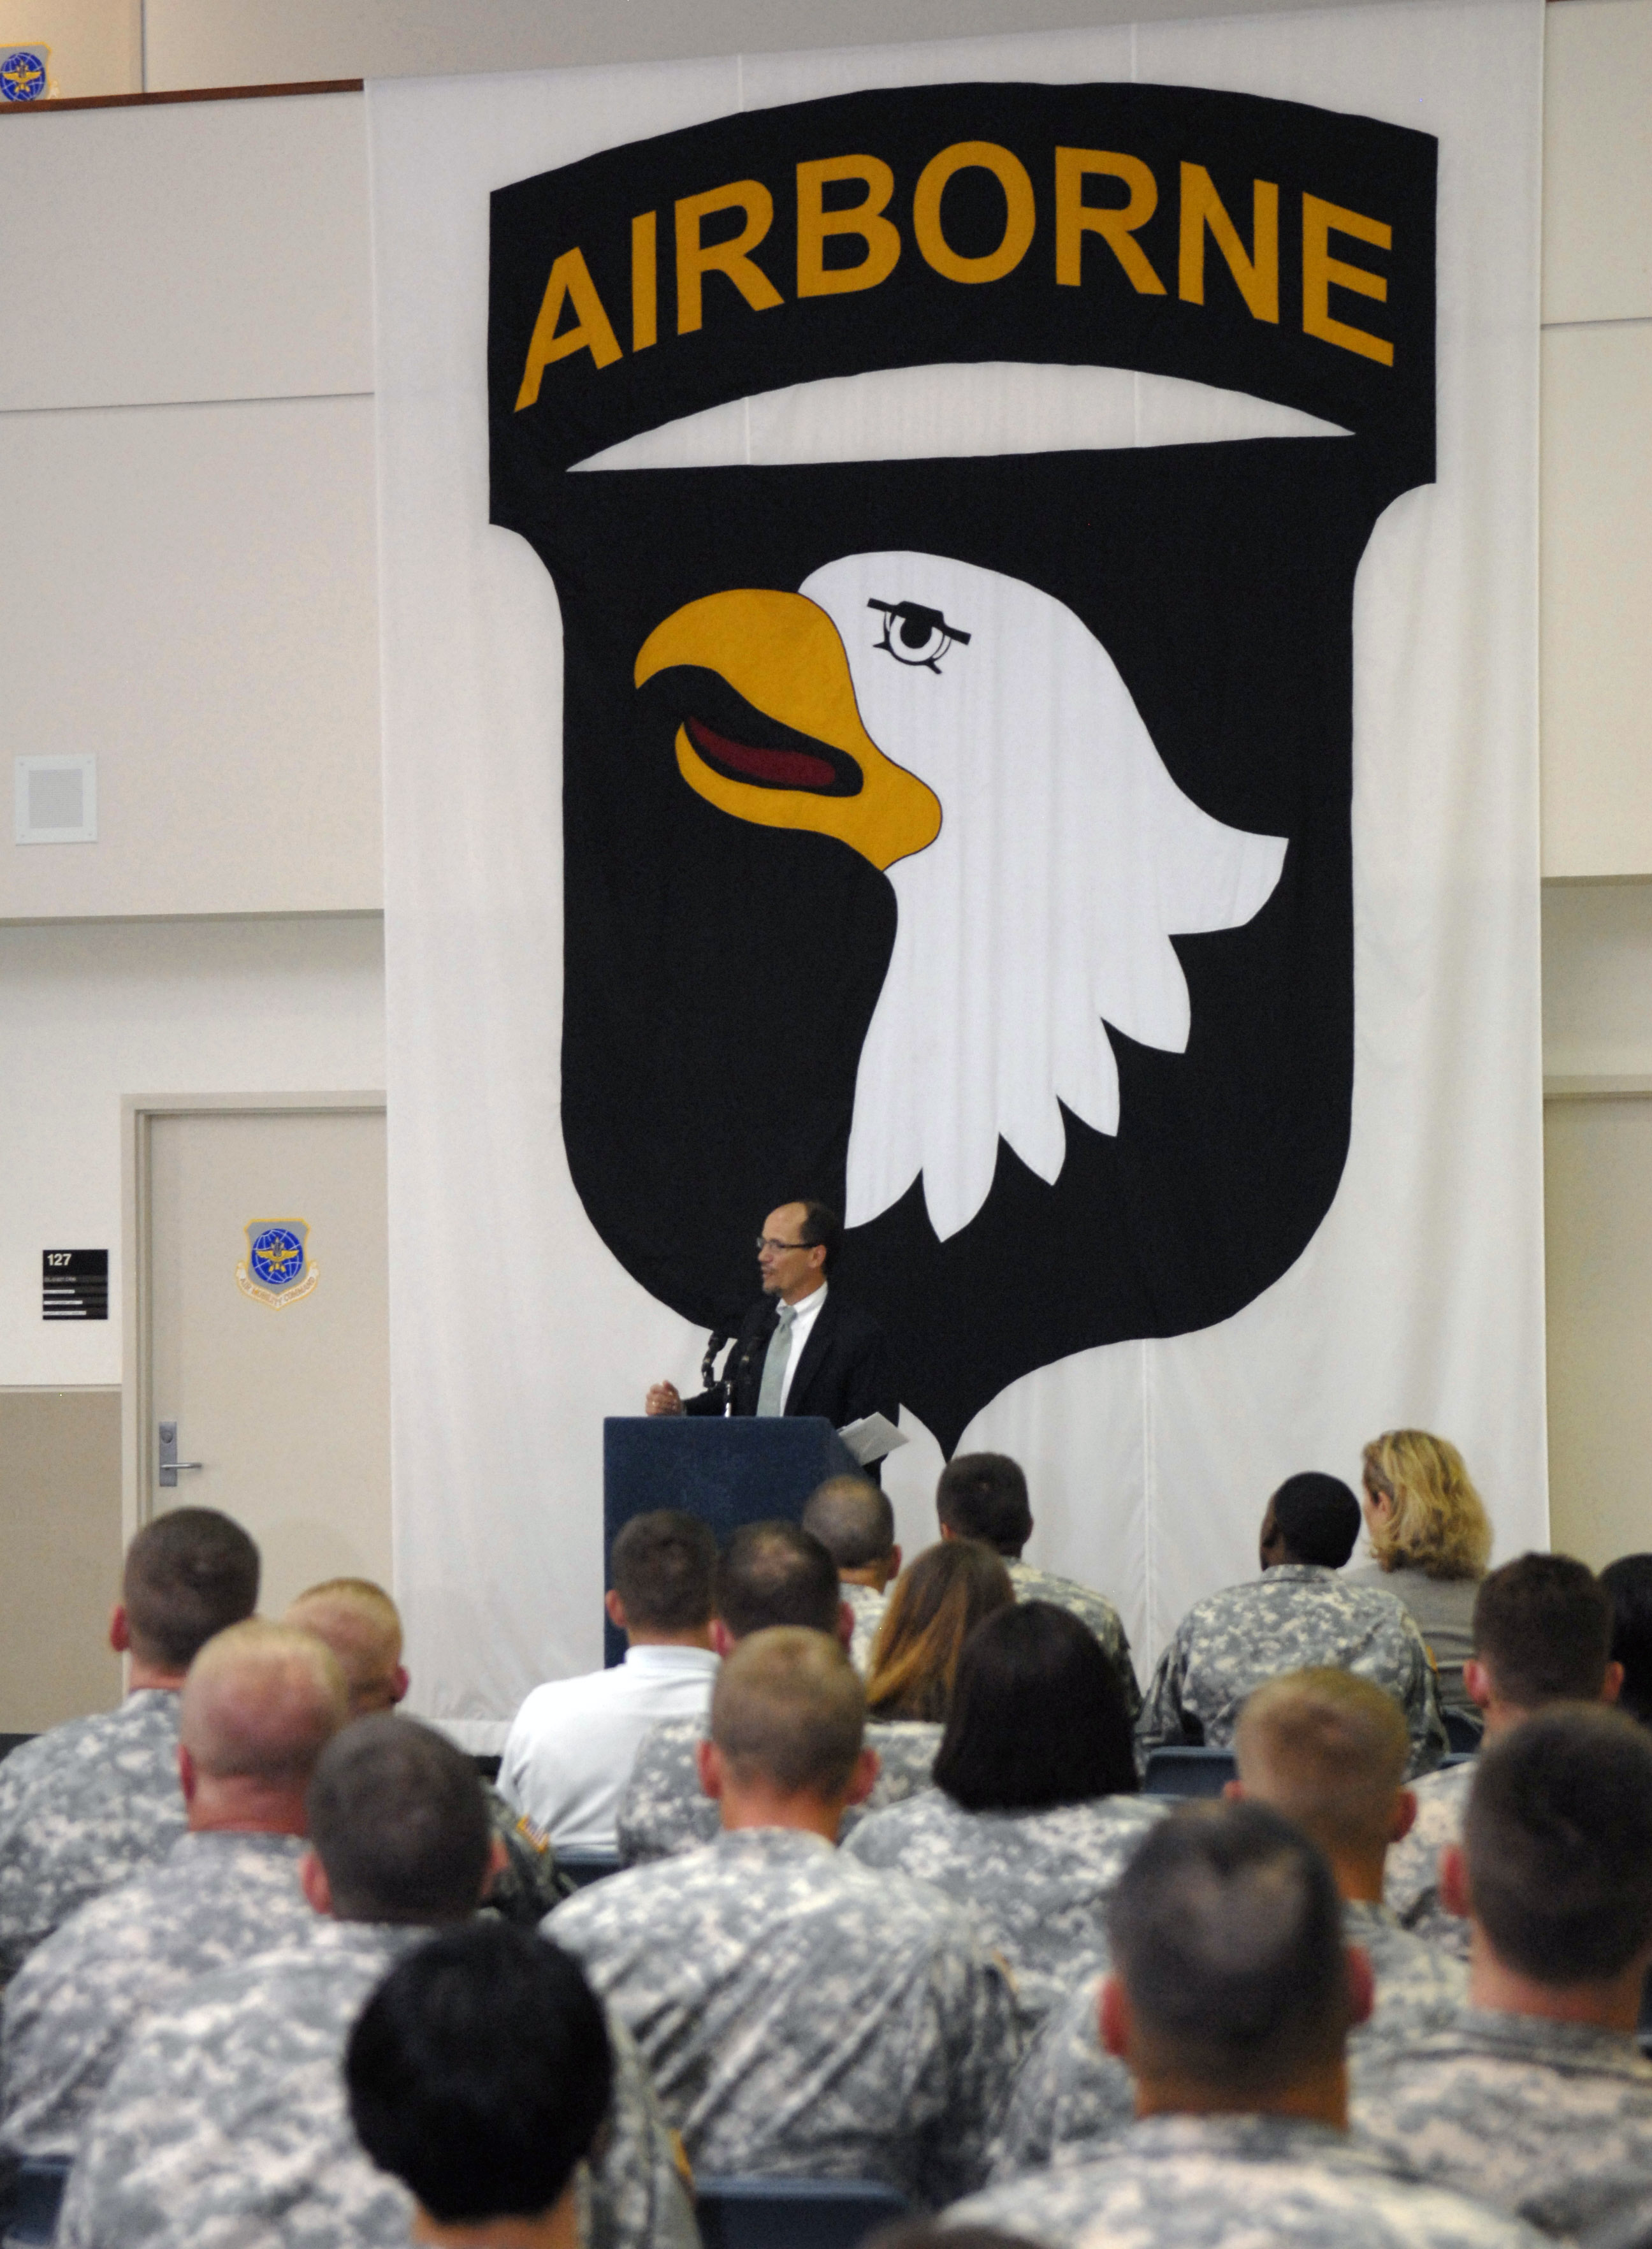 Thomas E. Perez, Assistant Attorney General for the Civil Rights Division of the United States Department of Justice speaks with Soldiers from the 101st Airborne Division at Fort Campbell during a special town hall meeting on May 17, 2012